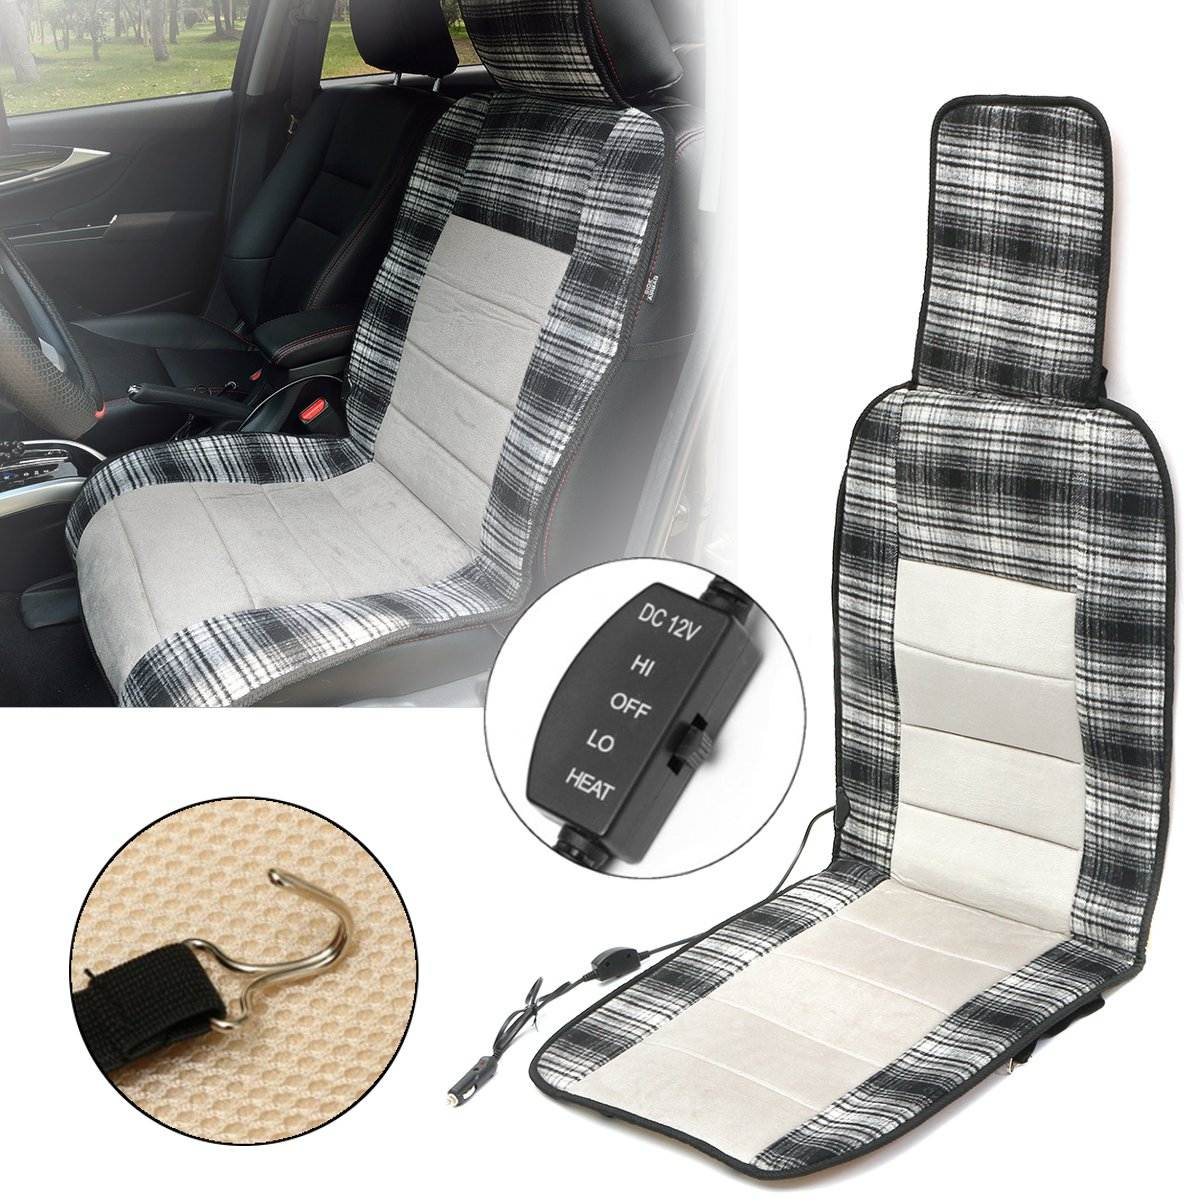 12V Car Heated Heating Pad Hot Front Seat Cushion Cover Winter Warmer Electric Universal Heated Seat Cover High/Low Switch 12v electric car heated seat cushion cover auto heating heater warmer pad winter car seat cover supplies hight quality